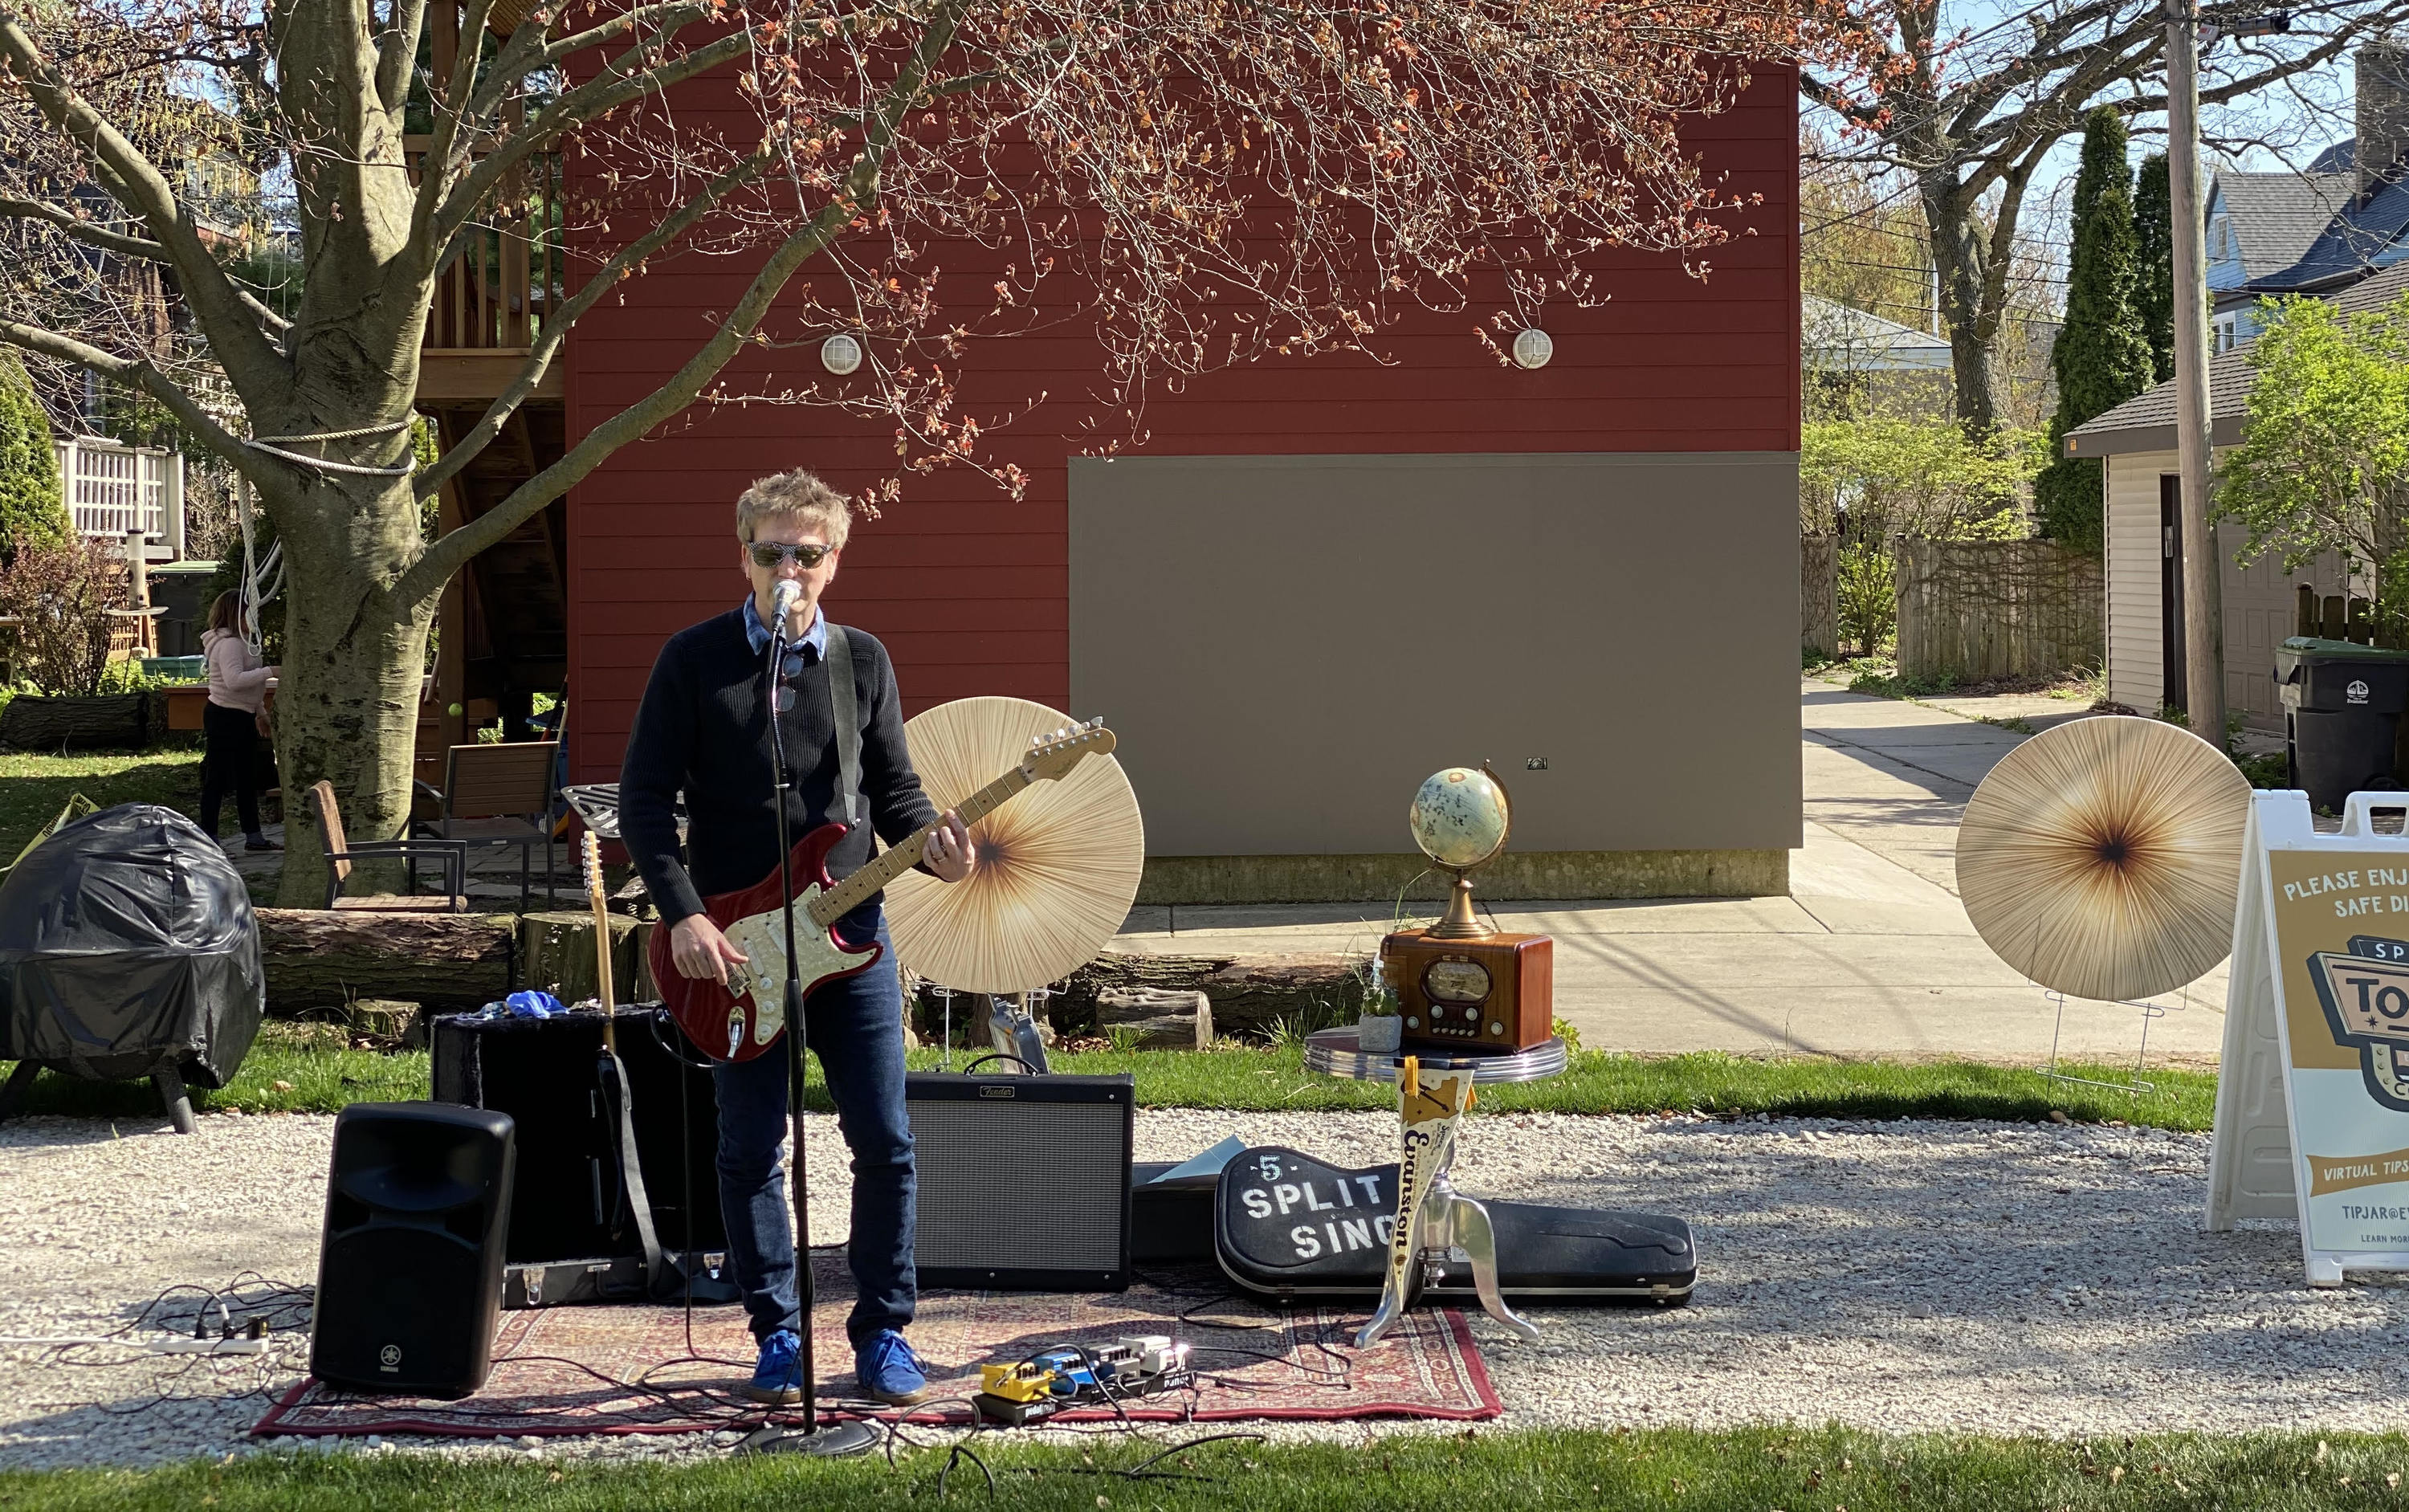 SPACE To-Go Concerts allow you to book a concert in your yard